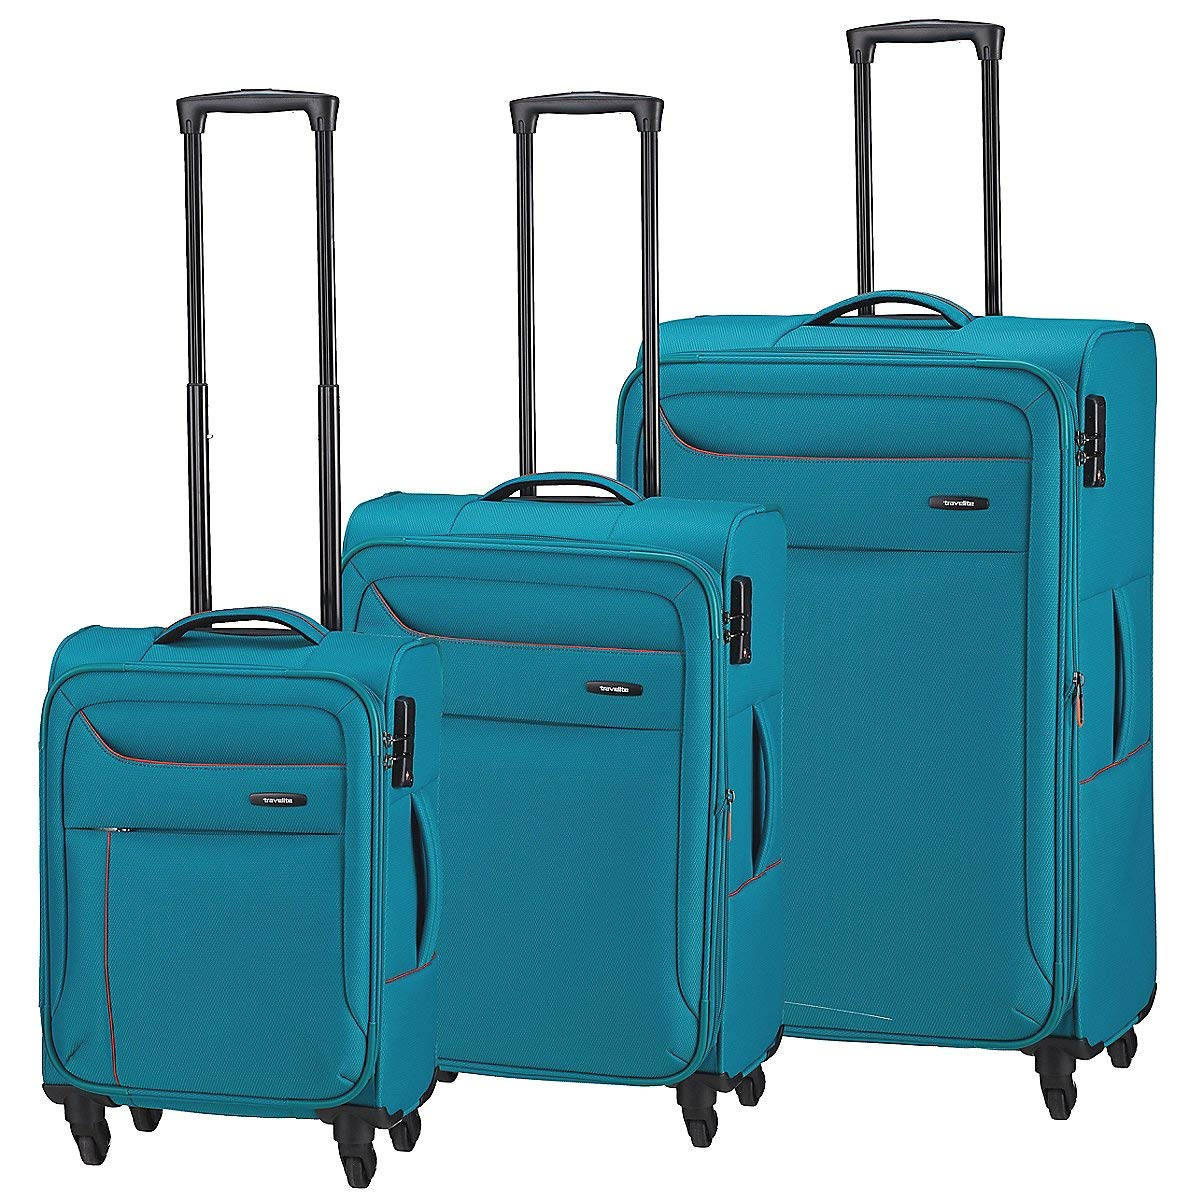 4teilig Aqua//Orange 88140-25 Set de Bagages Travelite Solaris 4 Rad 225 liters Kofferset 77 cm L//M//S Aqua//Orange Turquoise BT